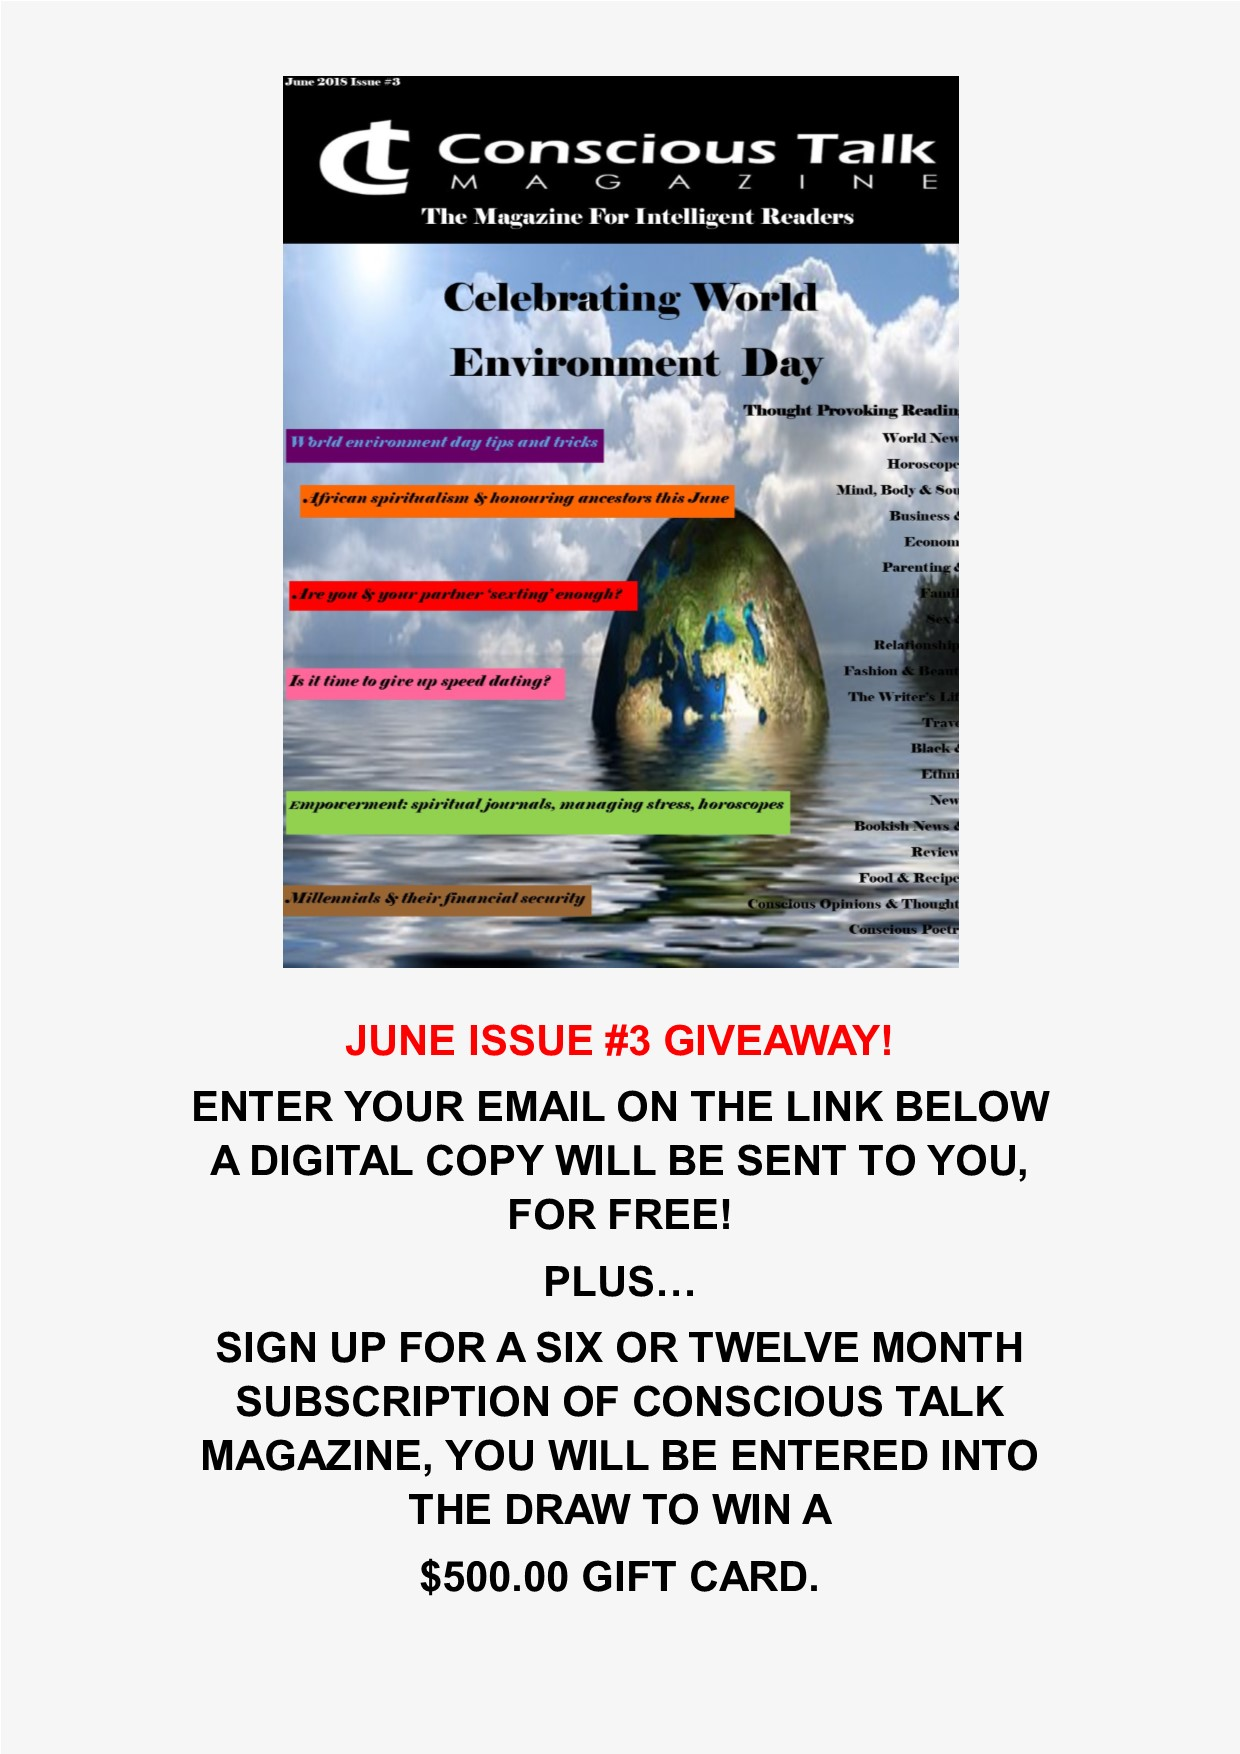 June Complimentary Issue Giveaway.jpg